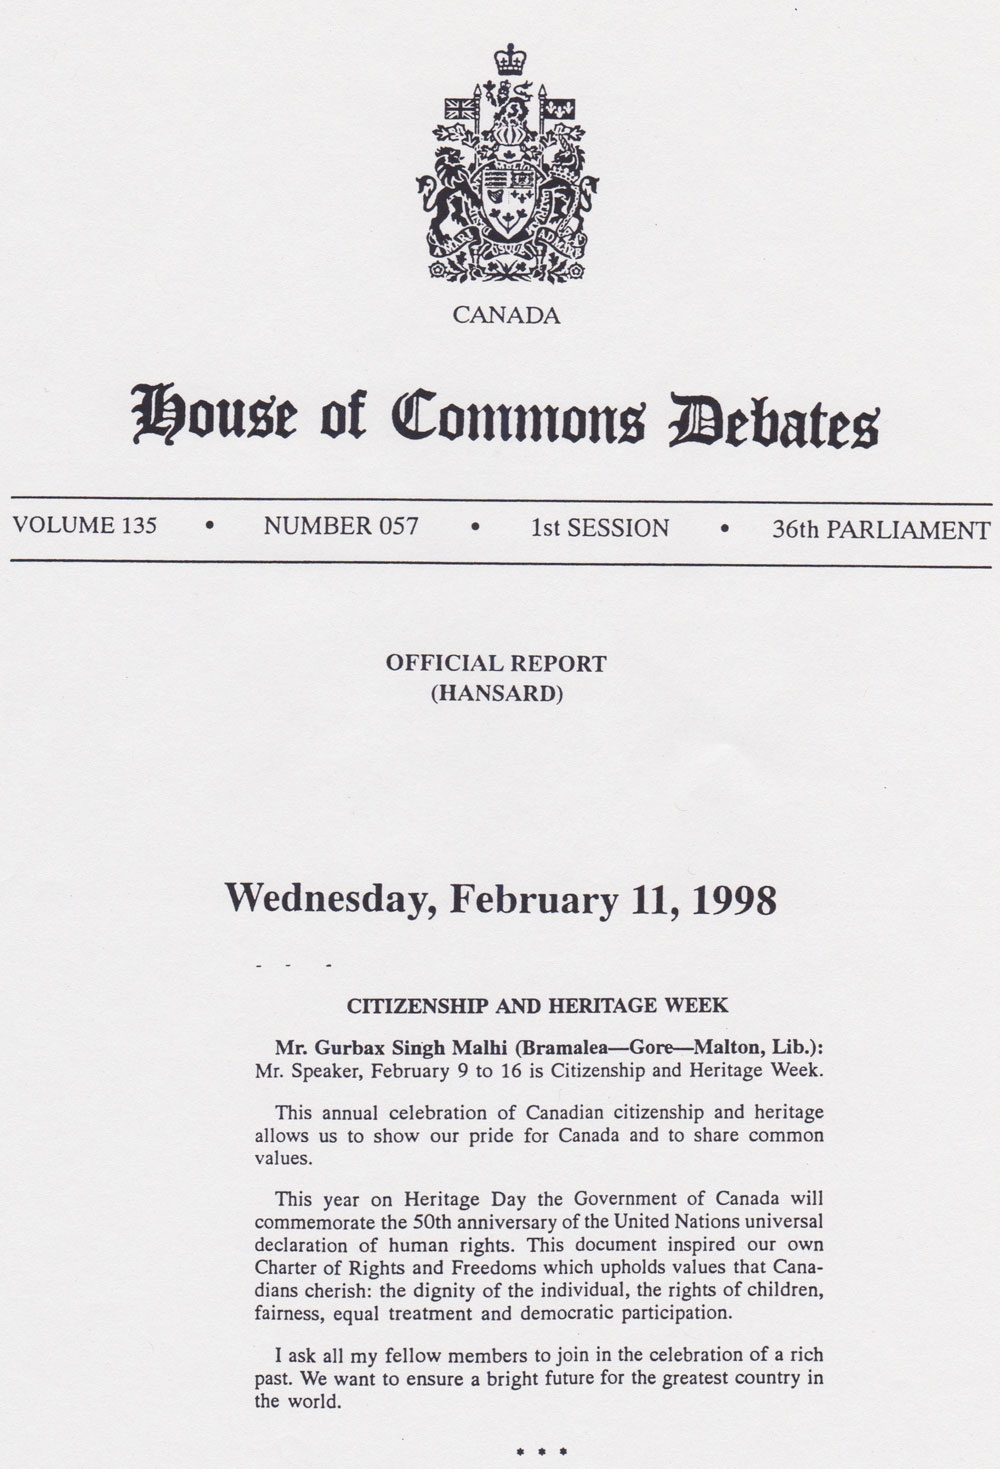 02/11/98 Citizenship and Heritage Week